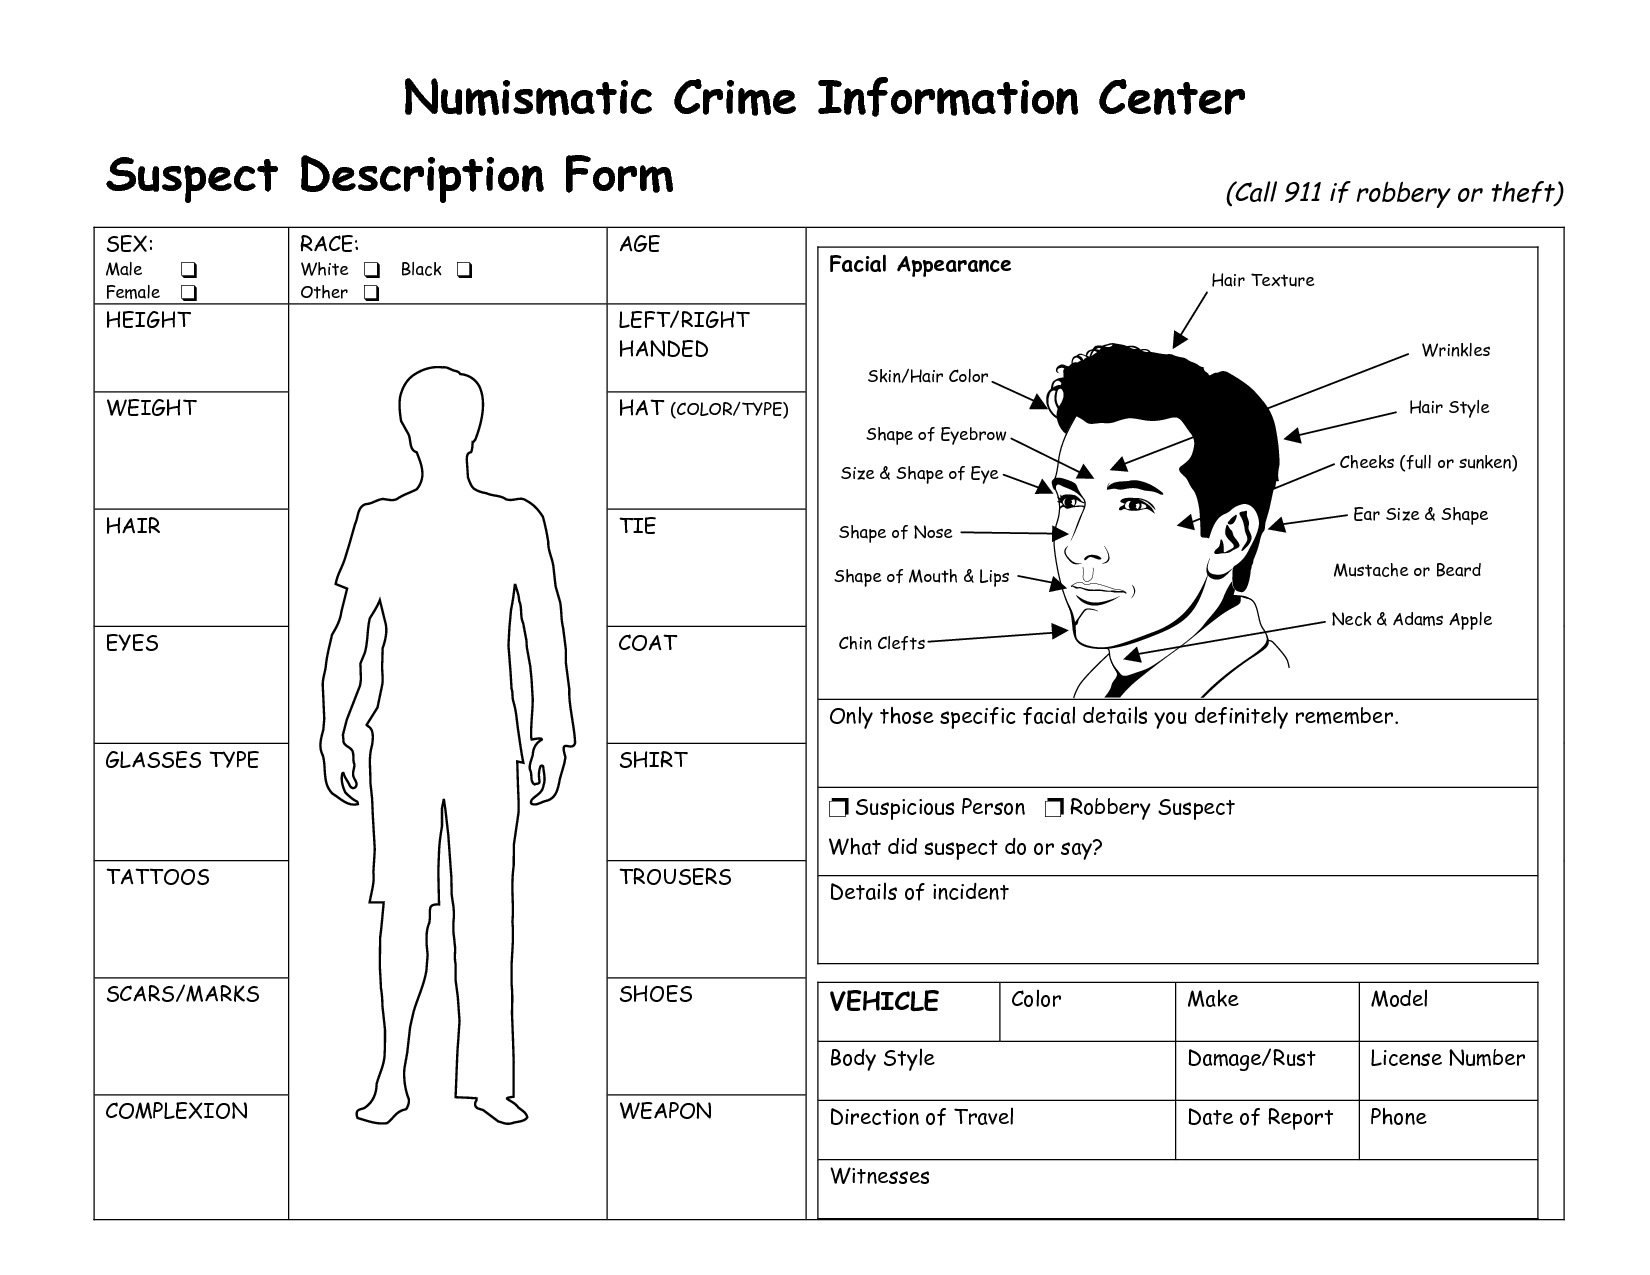 How The Police Access Data To Obtain Criminal Information